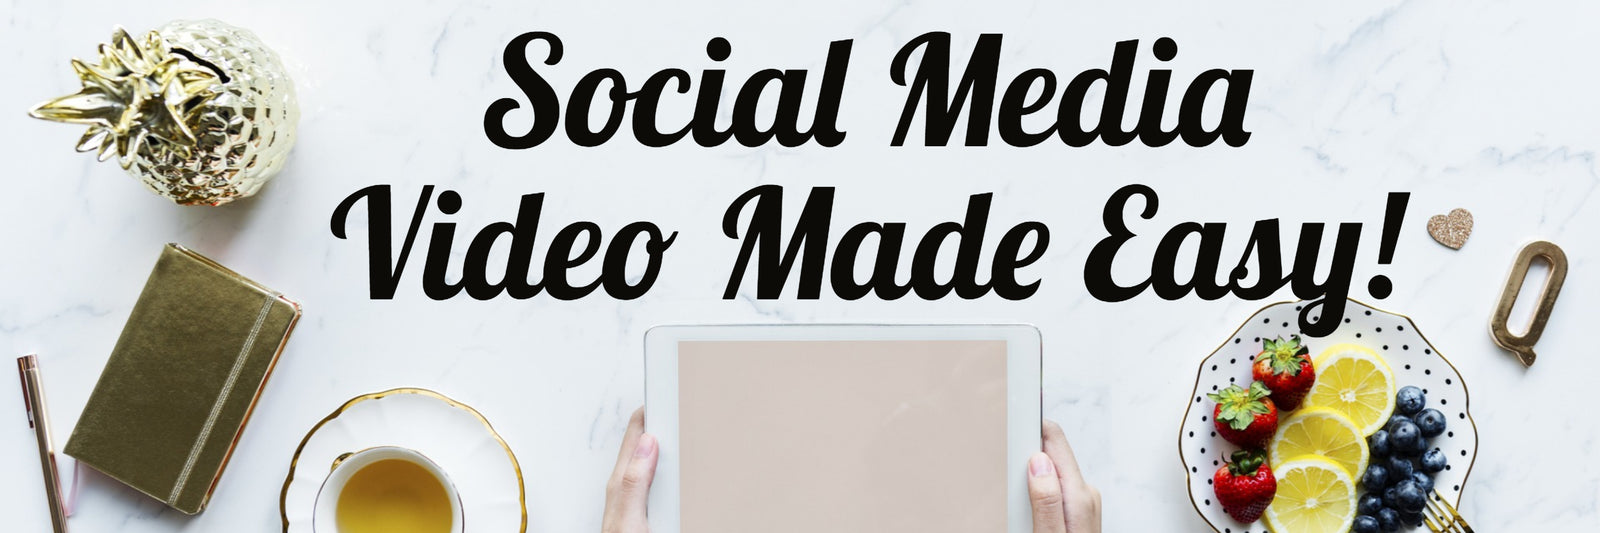 Social Media Video Made Easy!